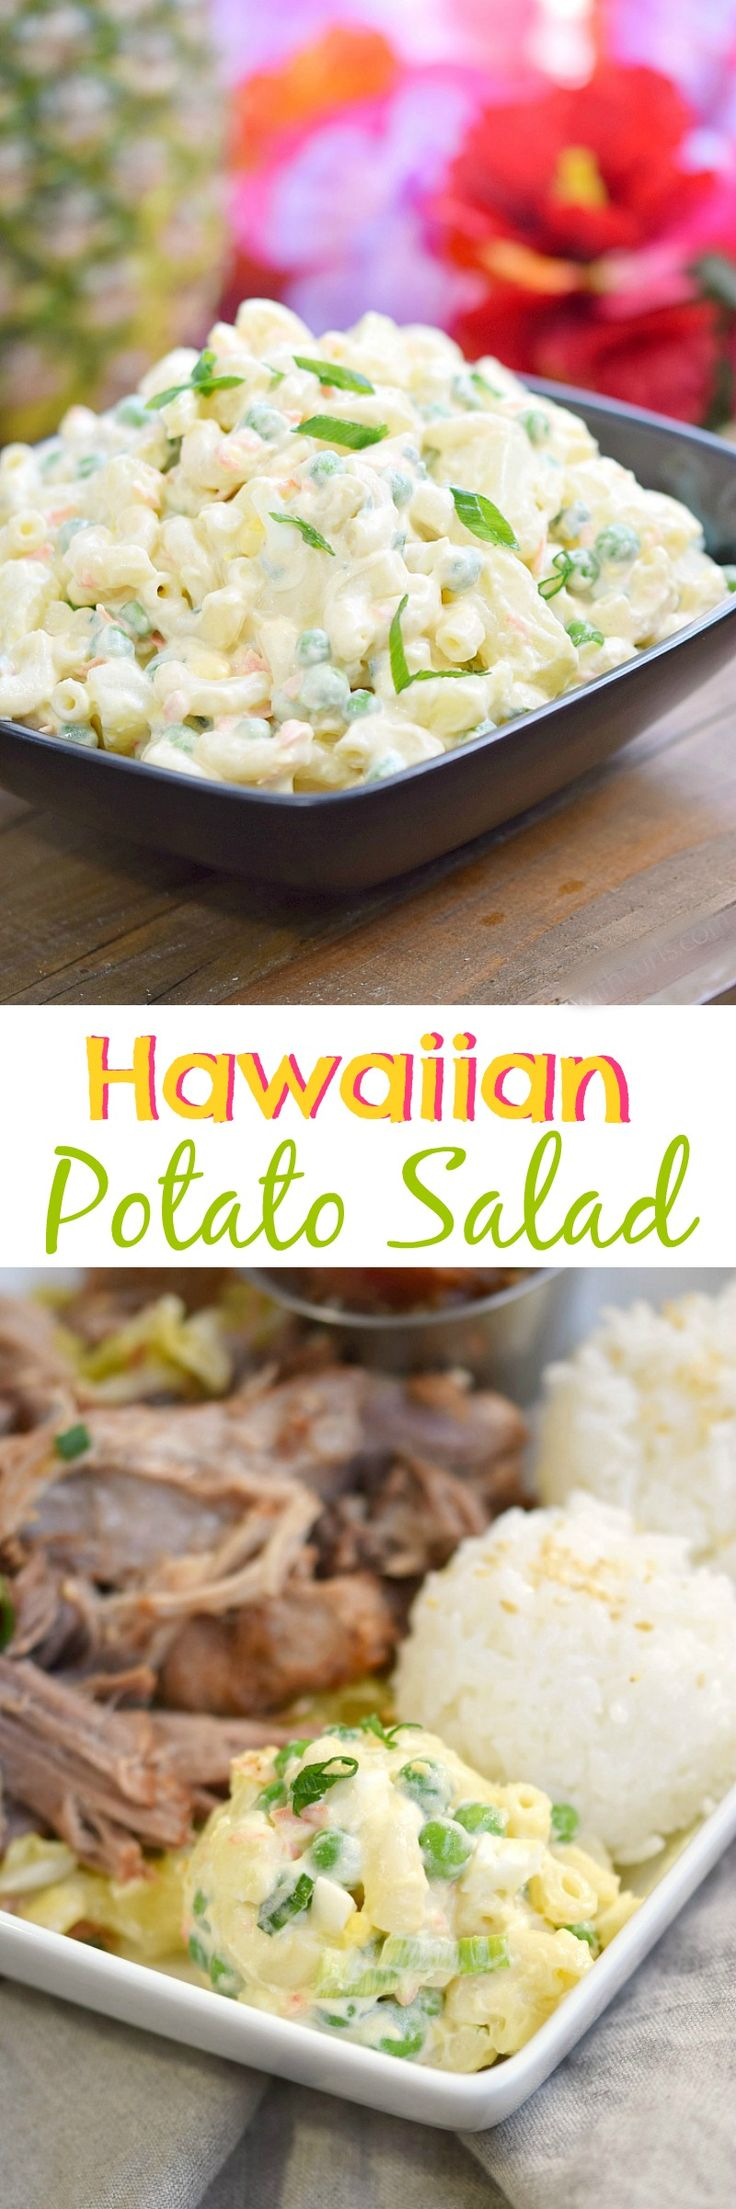 You can't have a luau or bento lunch without a scoop of this traditional Hawaiian Potato Salad on the side | cookingwithcurls.com